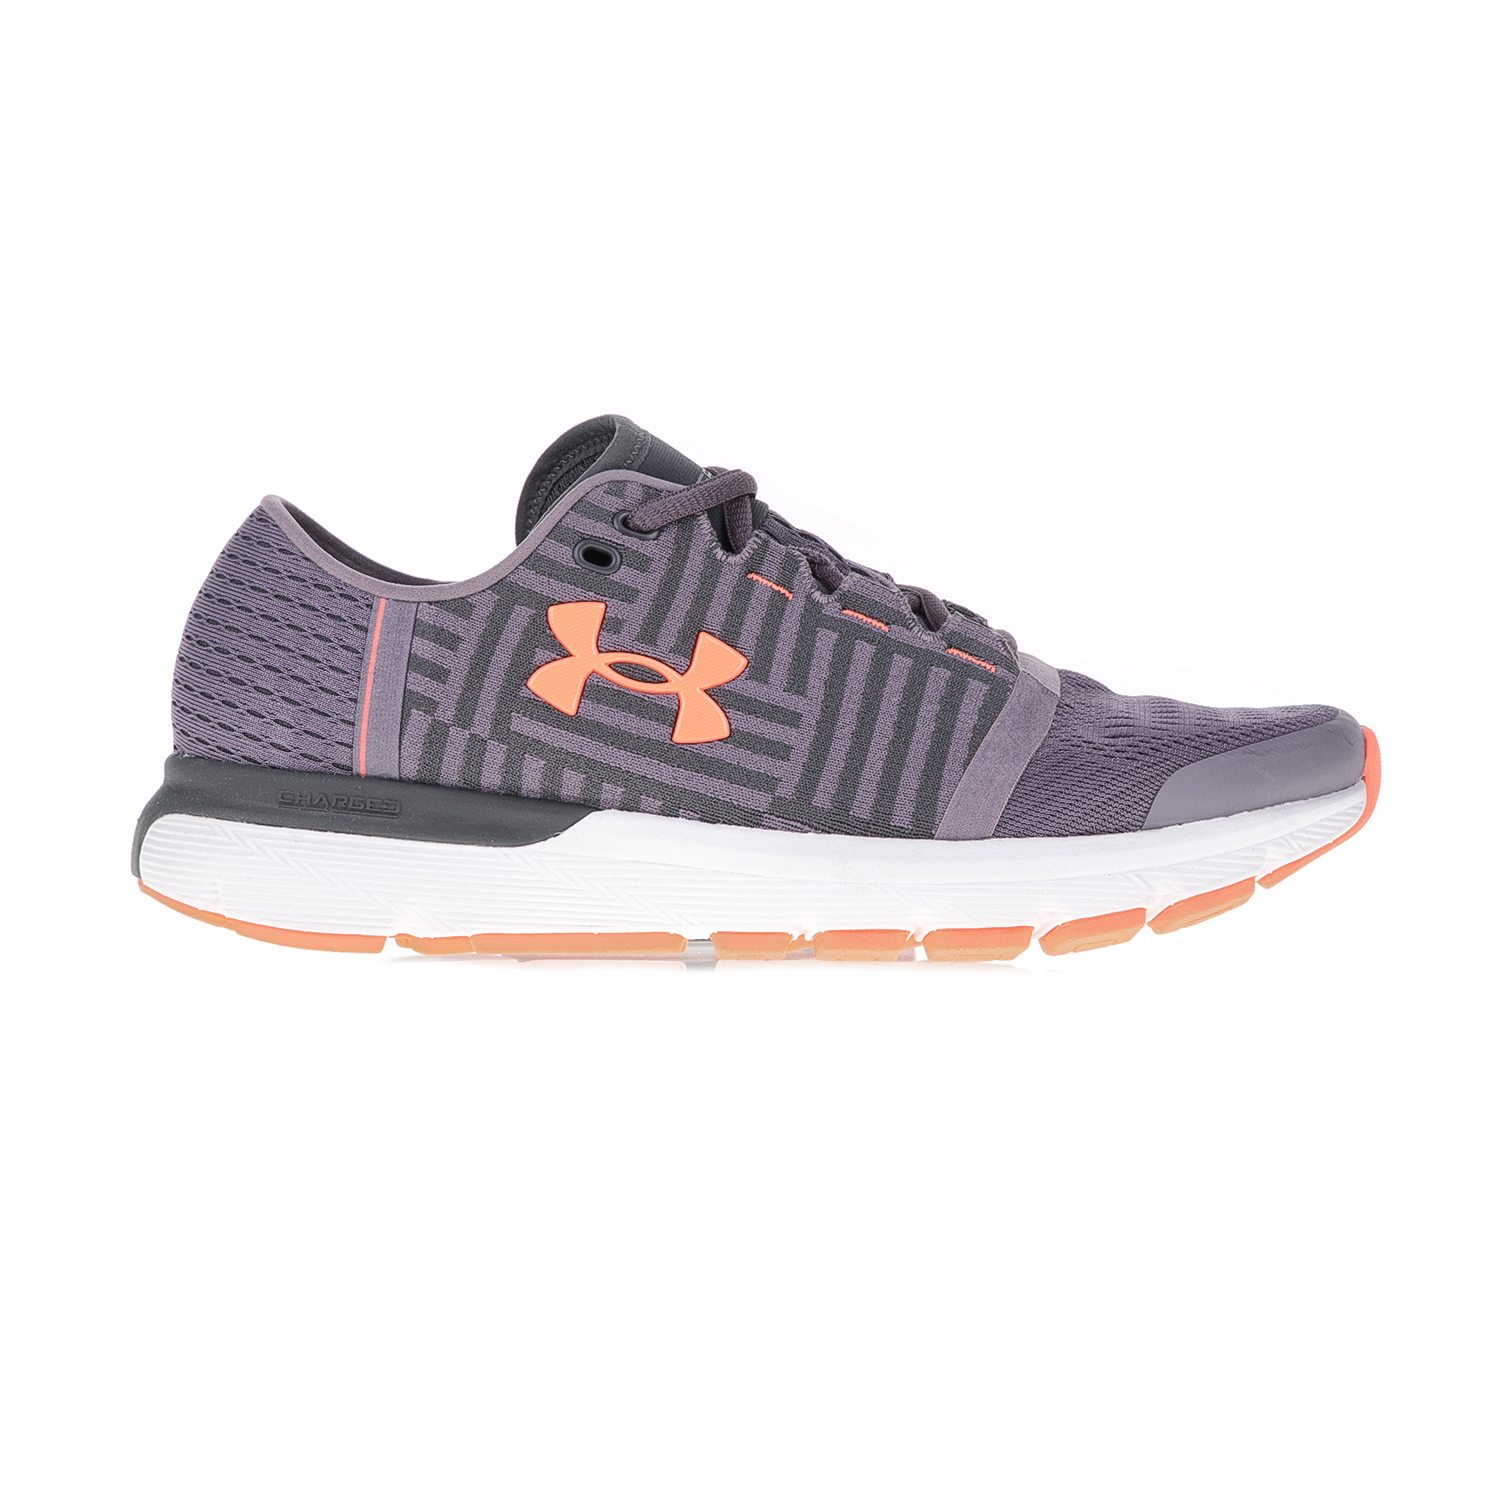 e813ab4ffdc -40% Factory Outlet UNDER ARMOUR – Γυναικεία αθλητικά παπούτσια UNDER  ARMOUR SPEEDFORM GEMINI 3 γκρι-μοβ